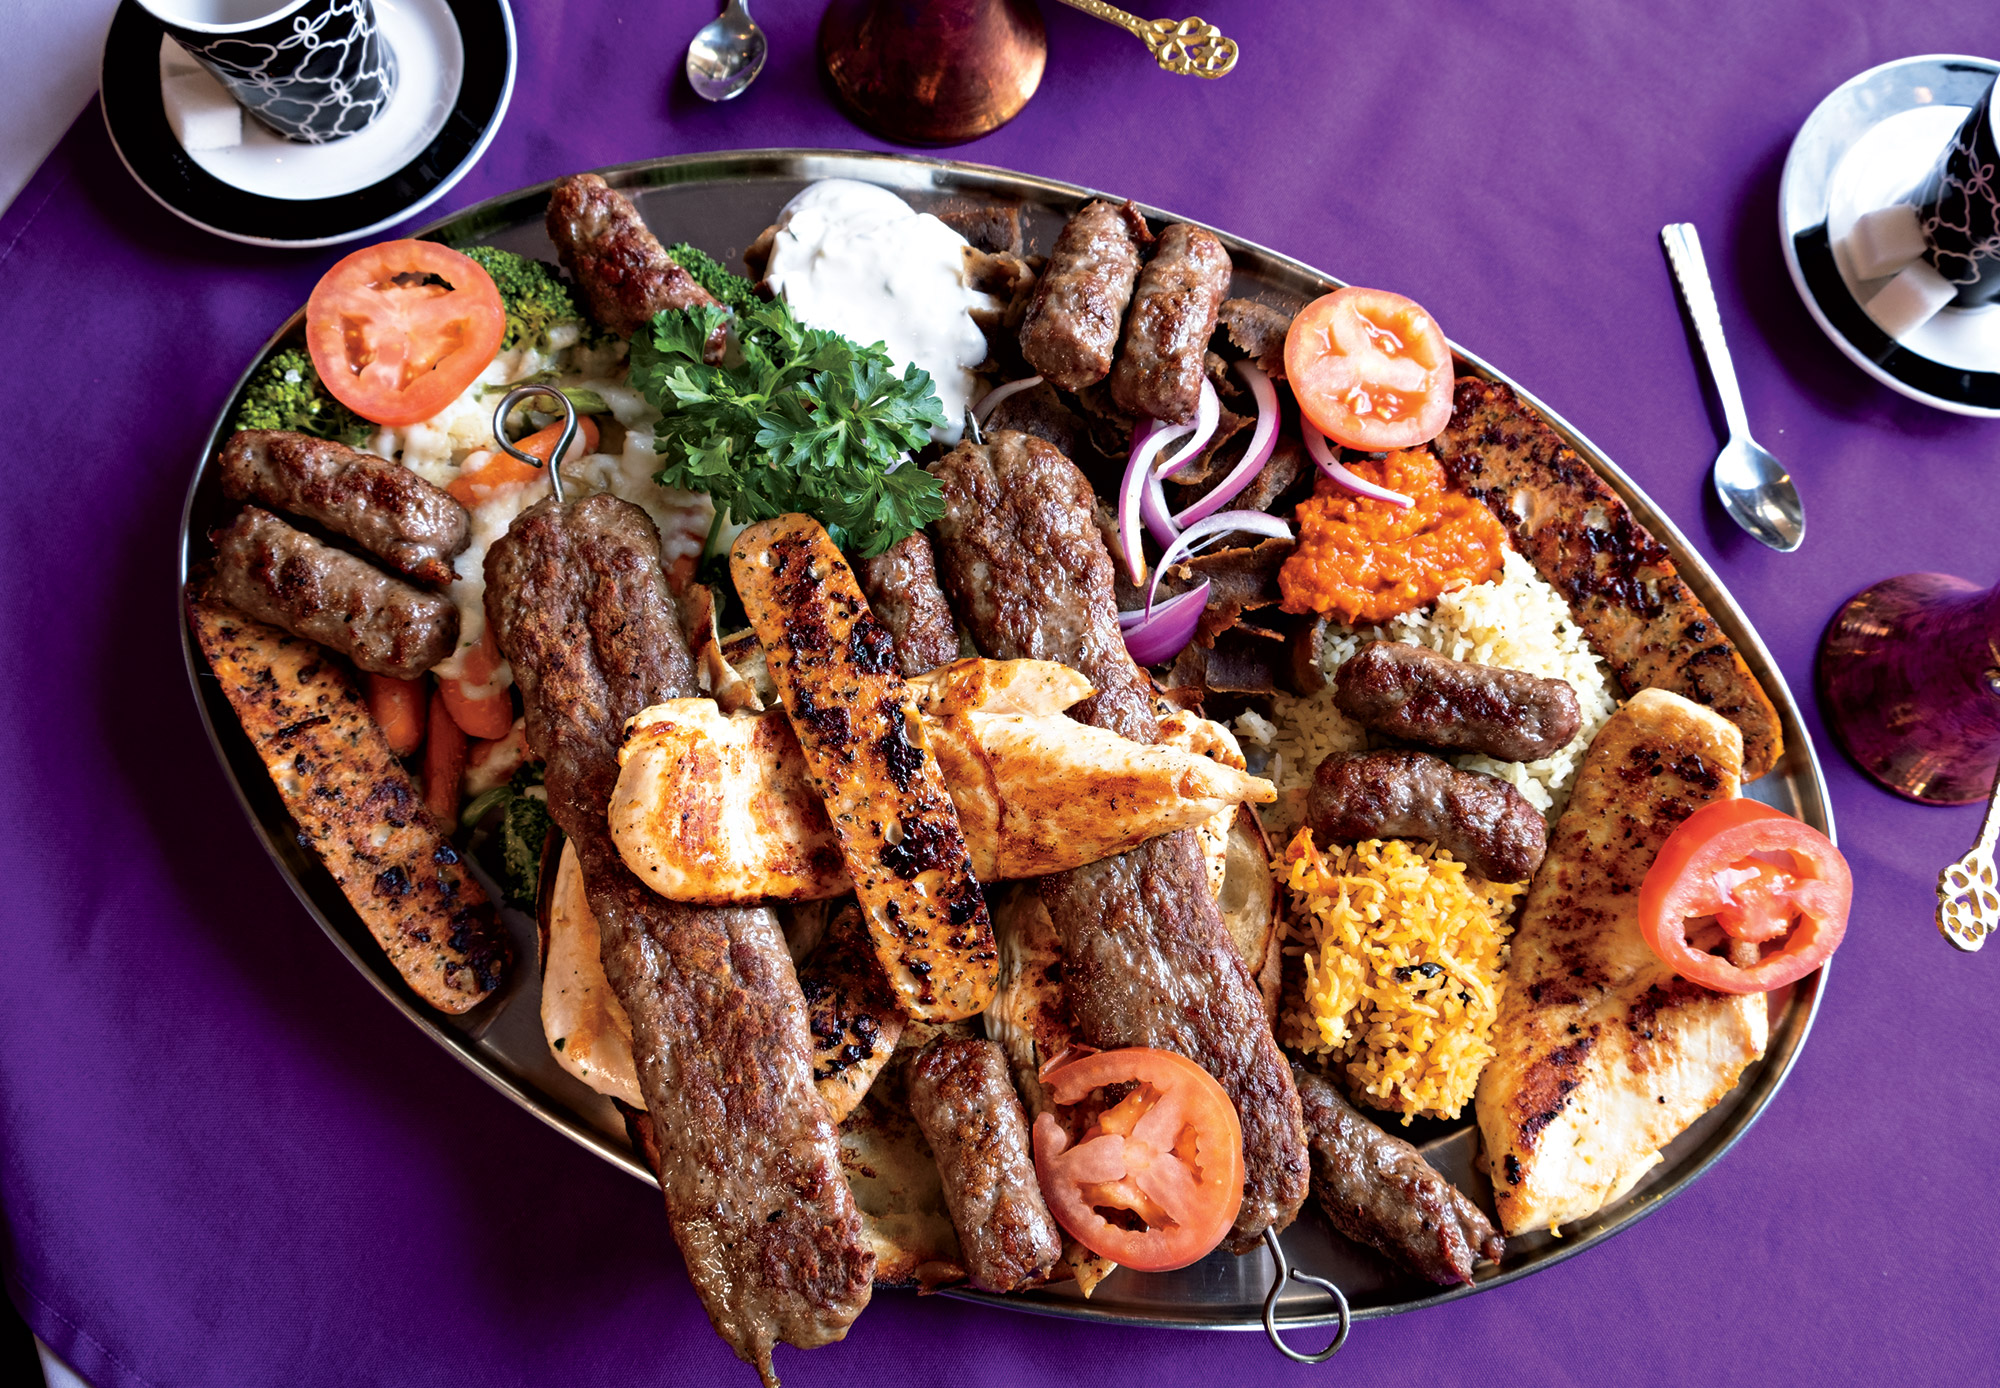 Bosnian sausage plate at Chef Alisah's; Photo by Eric Cox